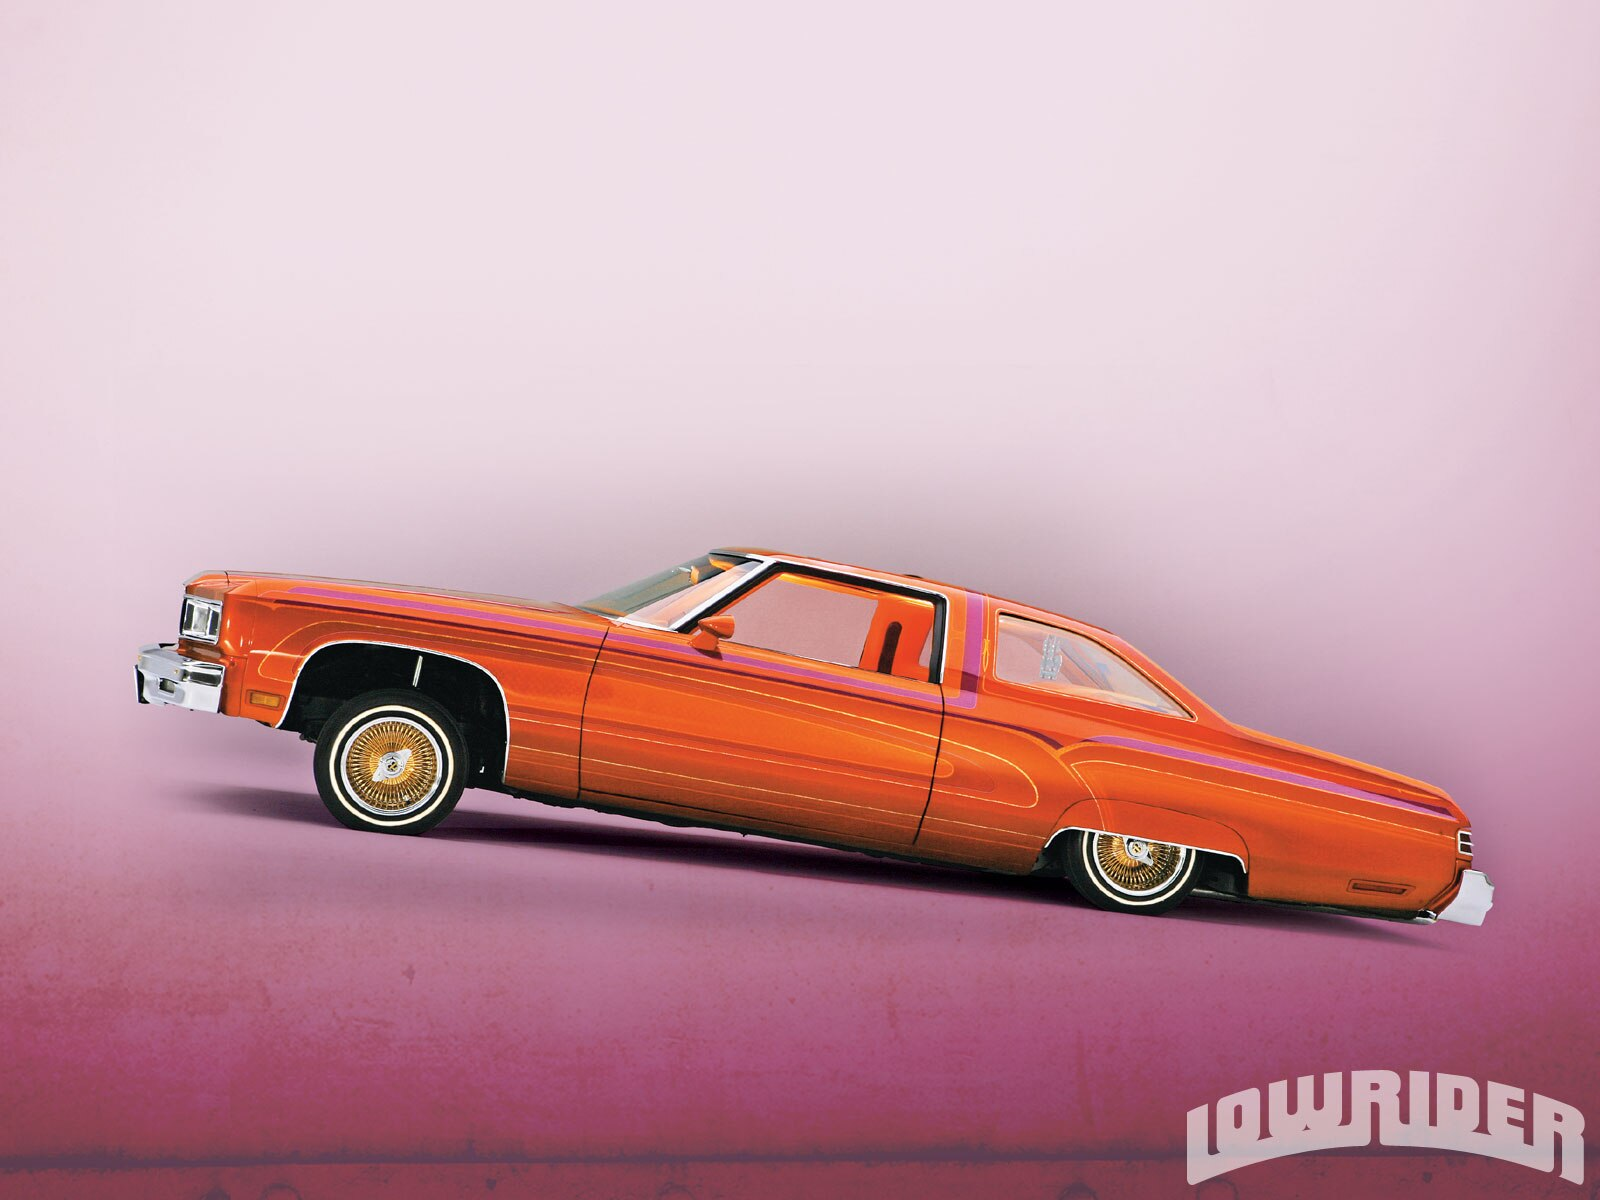 lrmp-1101-04-o-1976-chevy-caprice-side-view2